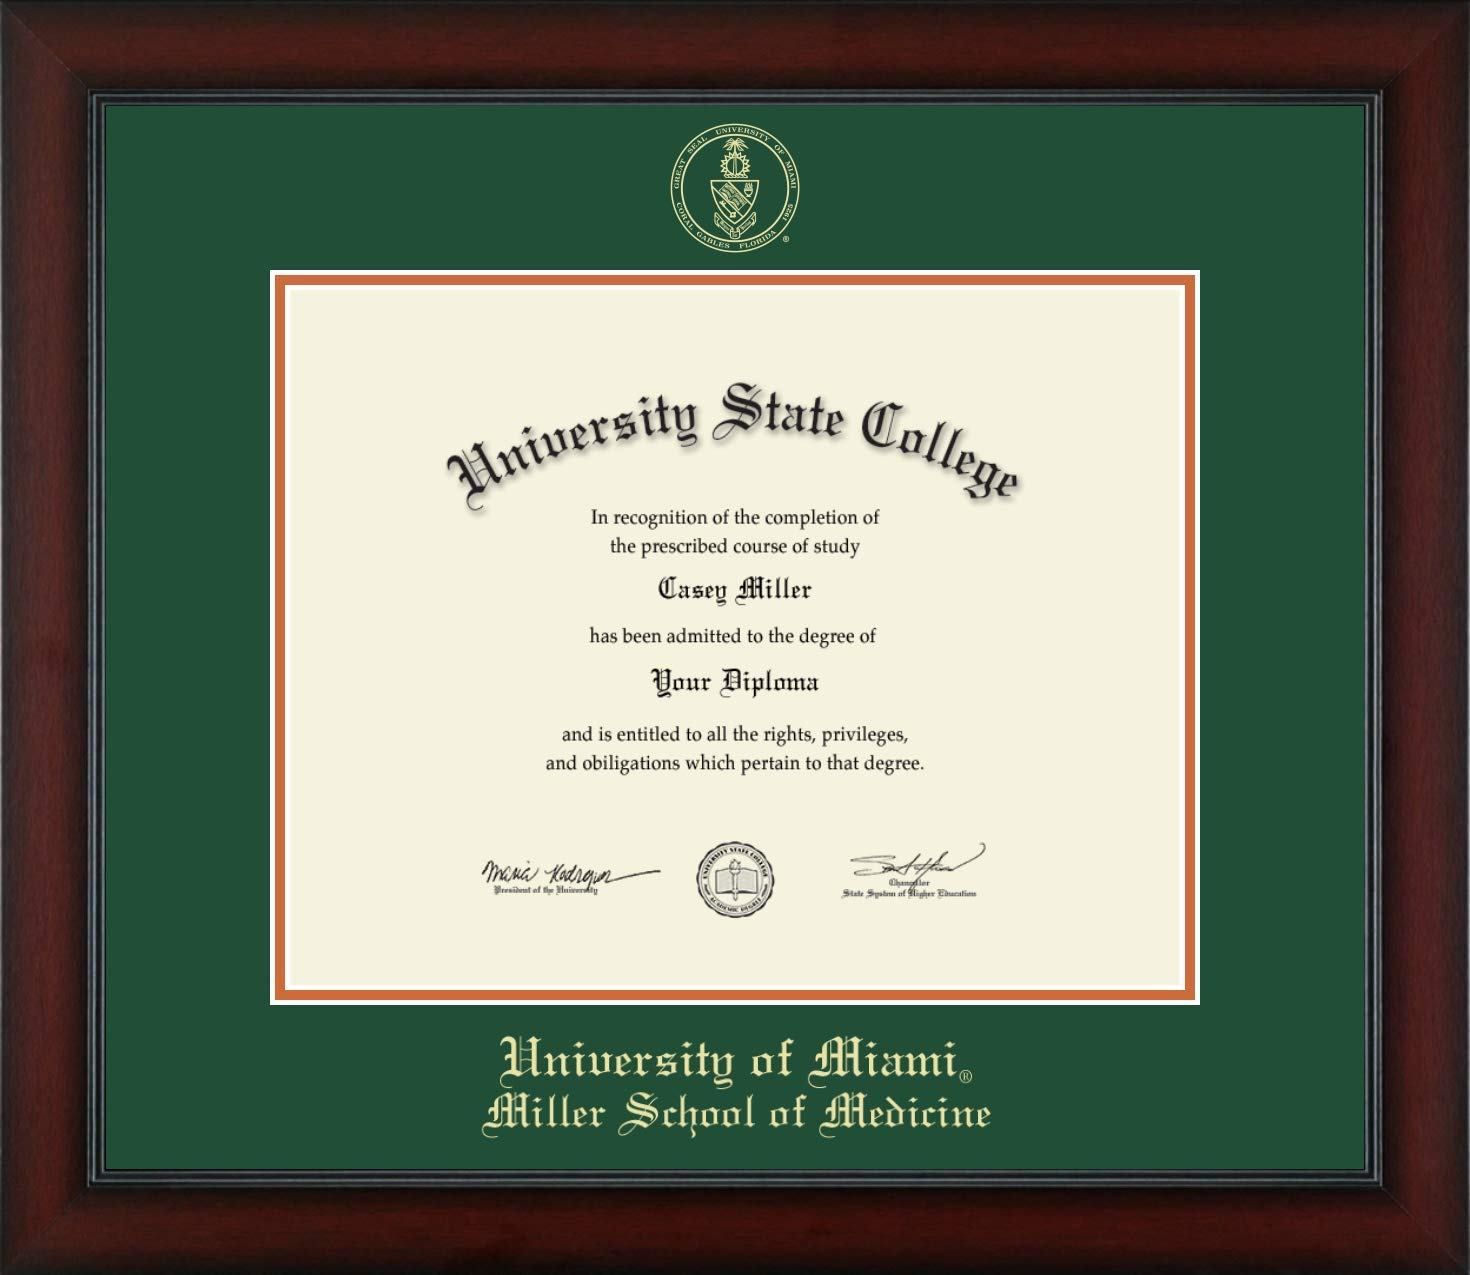 University of Miami Miller School of Medicine - Officially Licensed - Gold Embossed Diploma Frame - Diploma Size 14'' x 11''